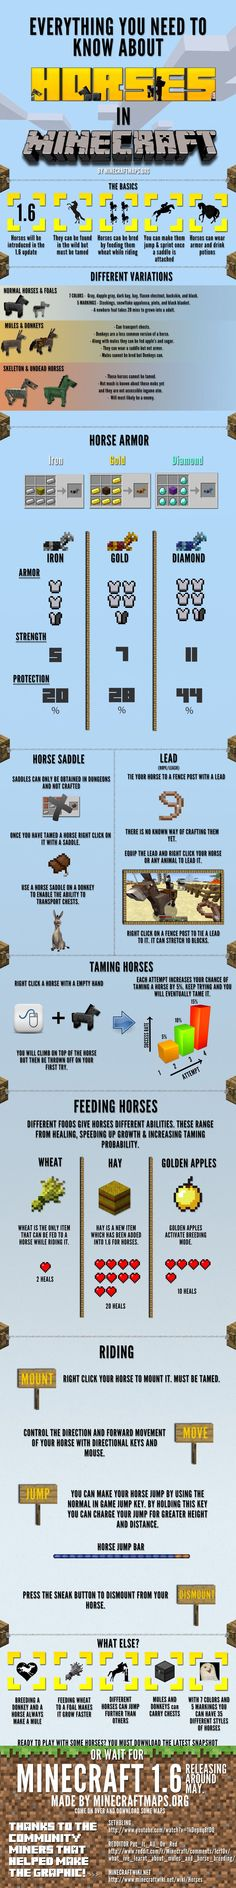 Everything you need to know about horses in Minecraft now in you can tame the skeleton and zombie horses, I have one of each but you can only put a saddle on, no armor. And you can't put a lead on them either which sucks but they are still really cool!